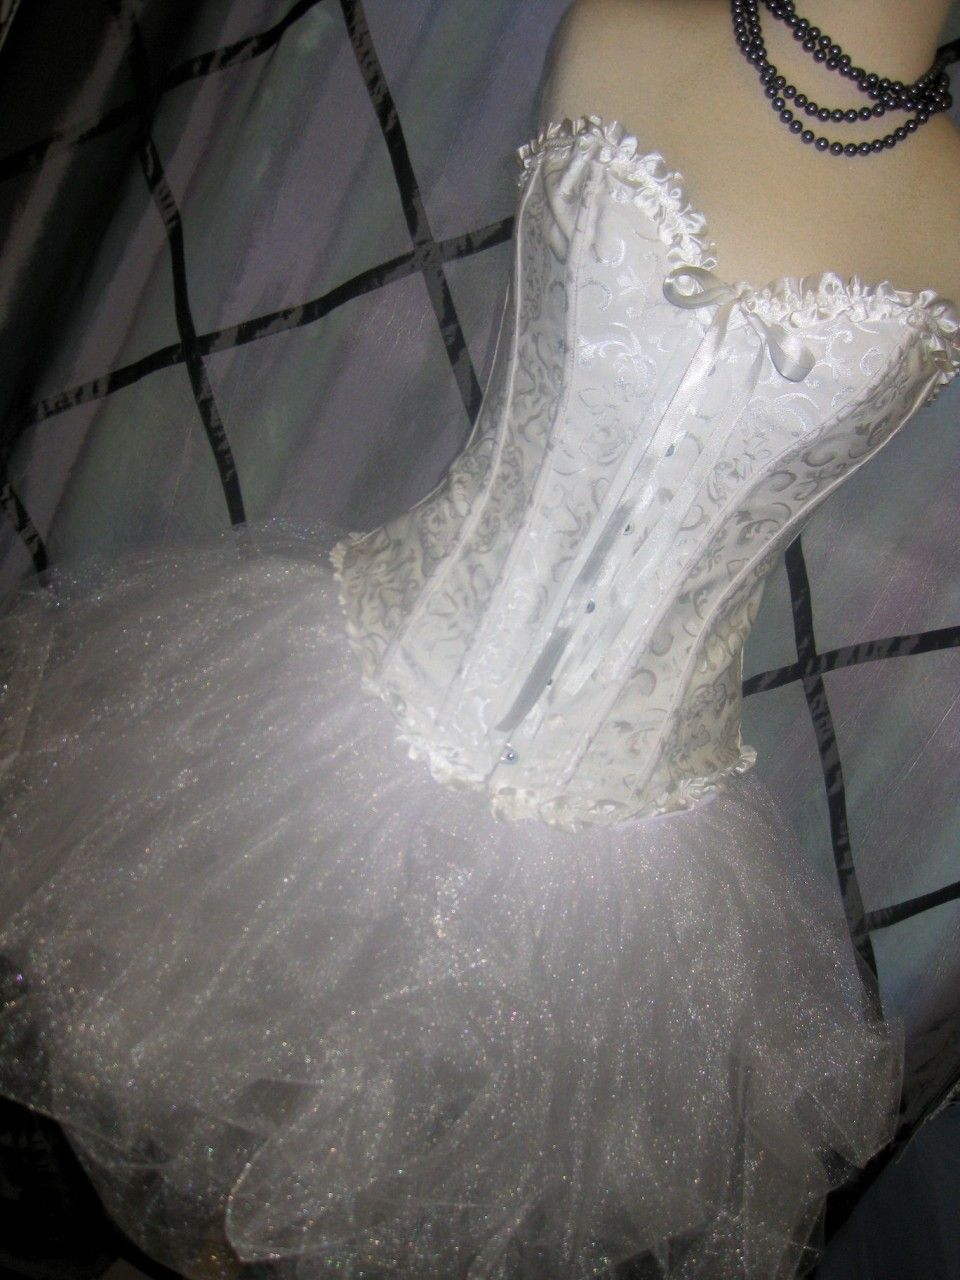 Elite wedding dresses  Dznr LLC  Elite Bachelorette Party Dress Madonna Like a Virgin